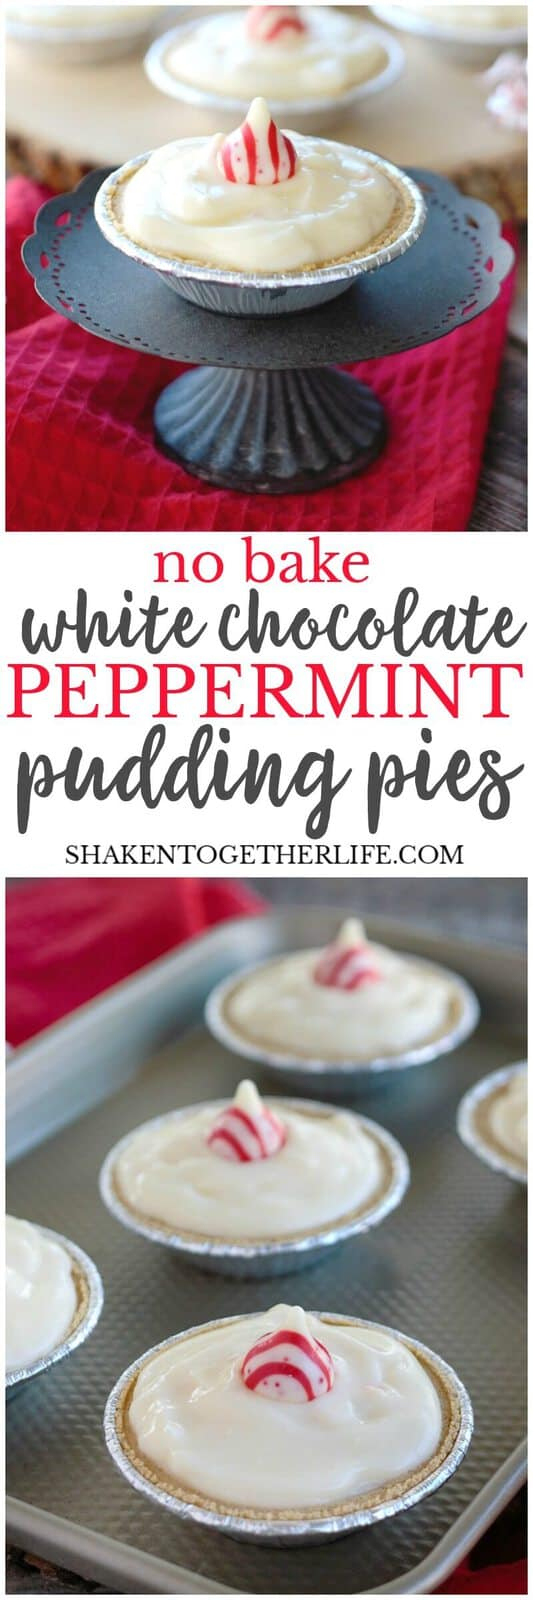 No Bake White Chocolate Peppermint Pudding Pies - this is a seriously easy holiday dessert with just 5 ingredients! The classic flavor combination of chocolate and peppermint shine in these mini pudding pies!